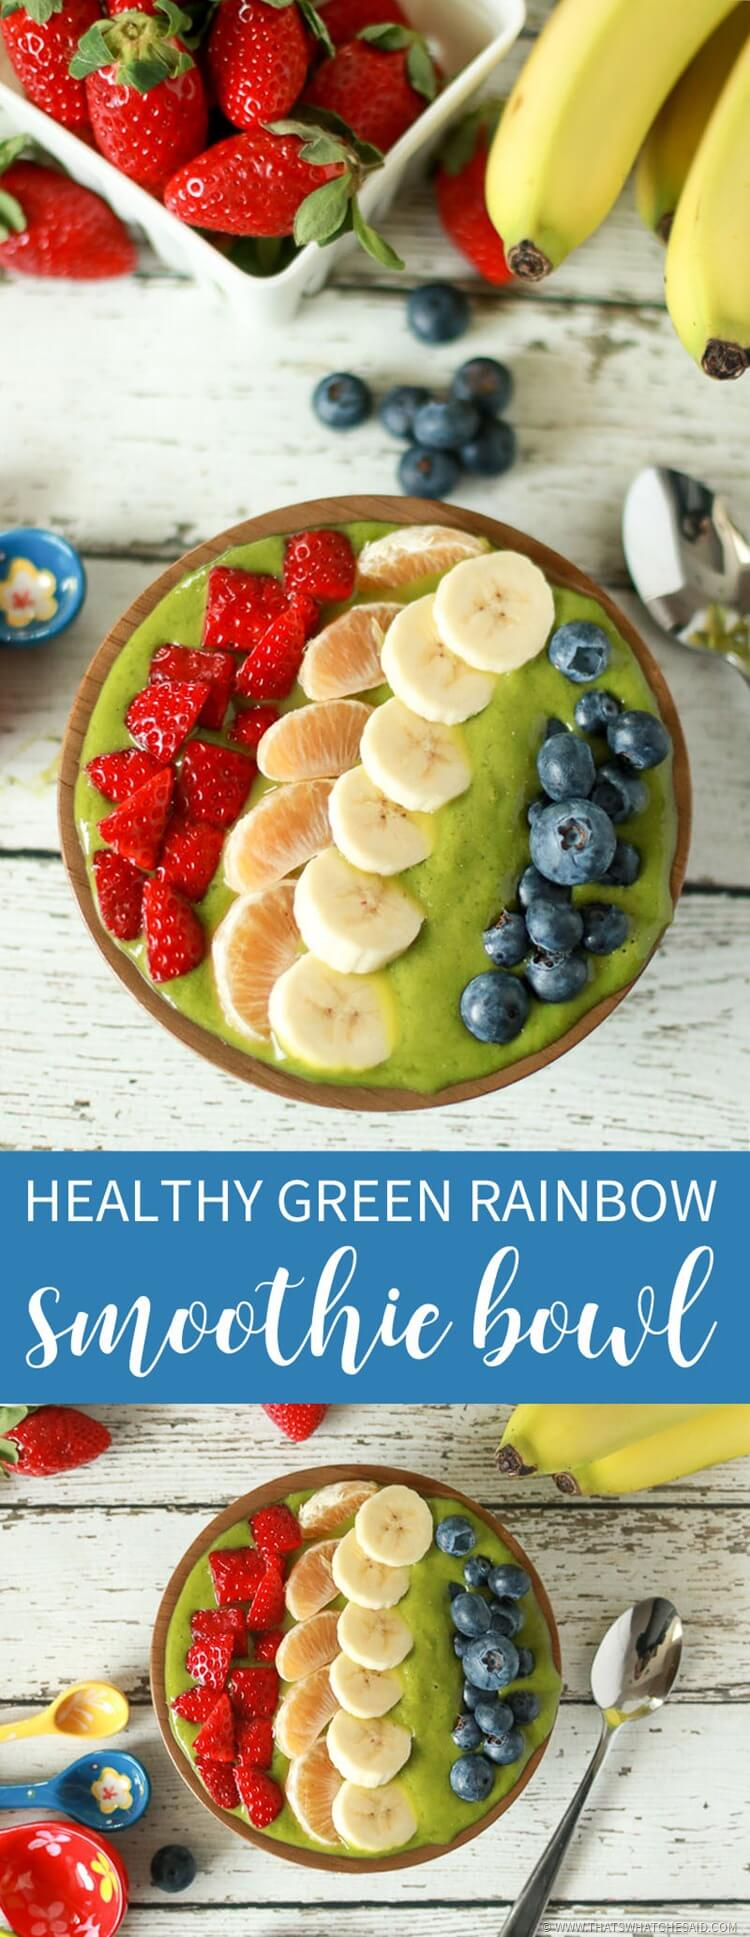 Healthy Rainbow Green Smoothie Bowl